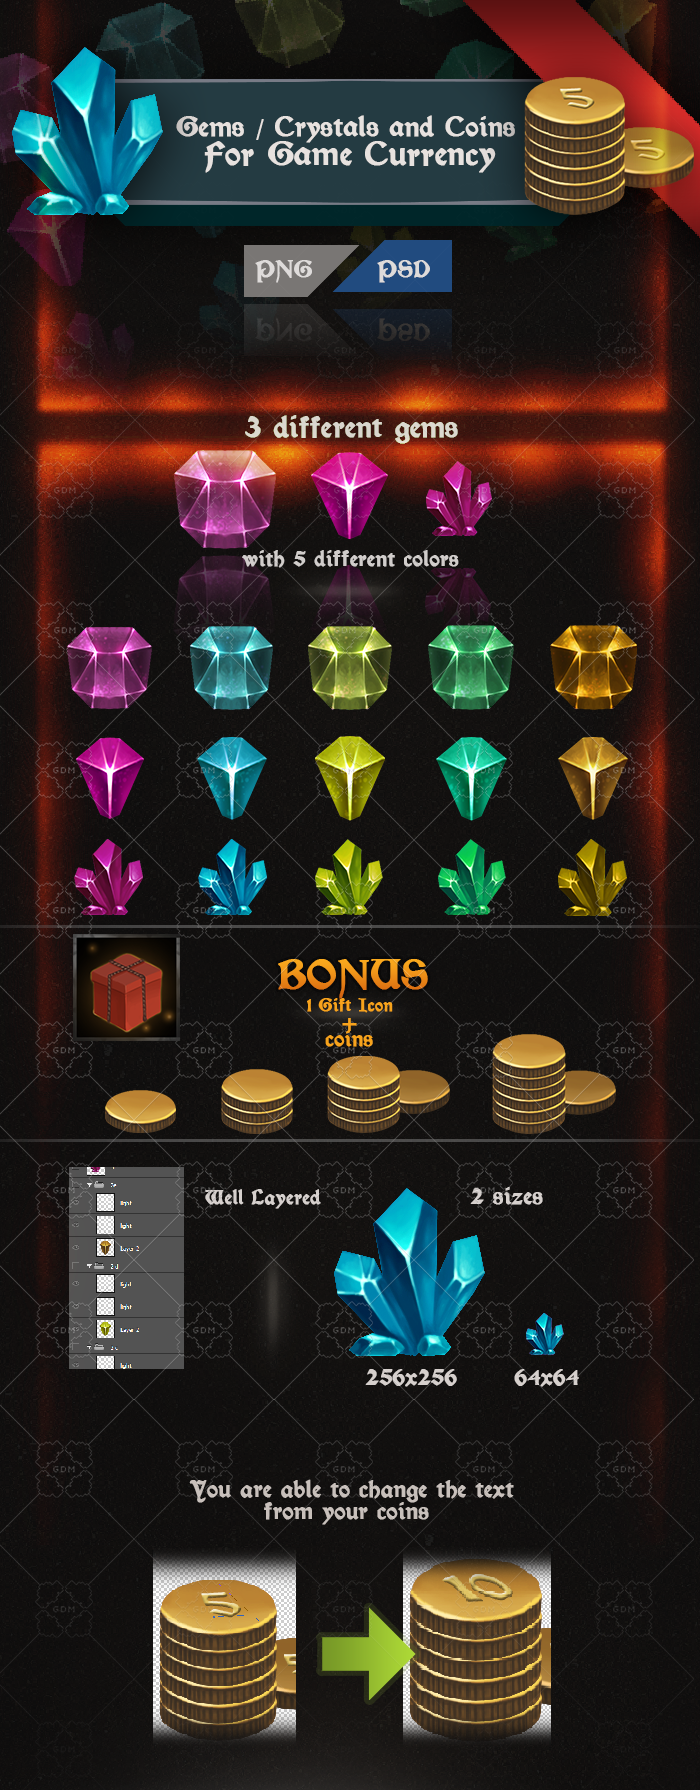 Gems / Crystals and Coins for Game Currency